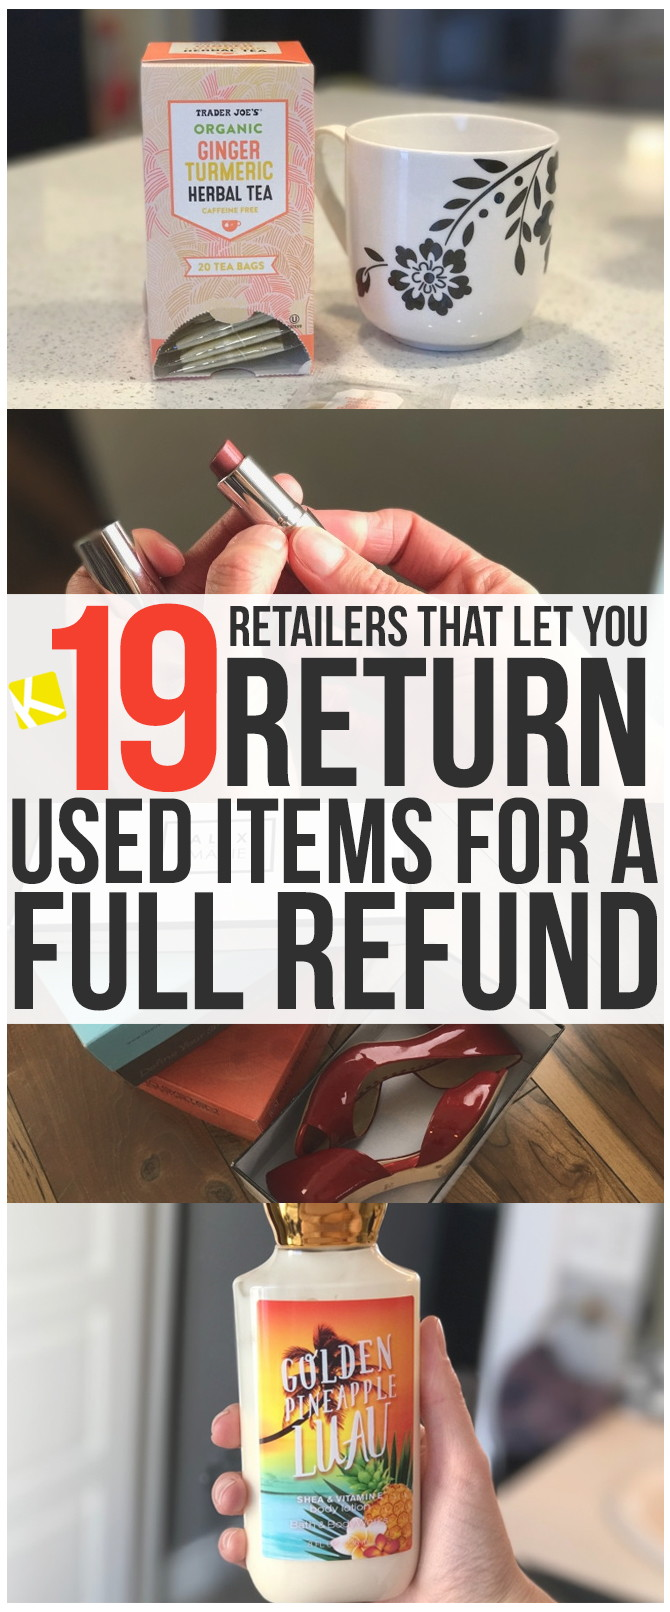 19 Retailers That Let You Return Used Items for a Full Refund - The